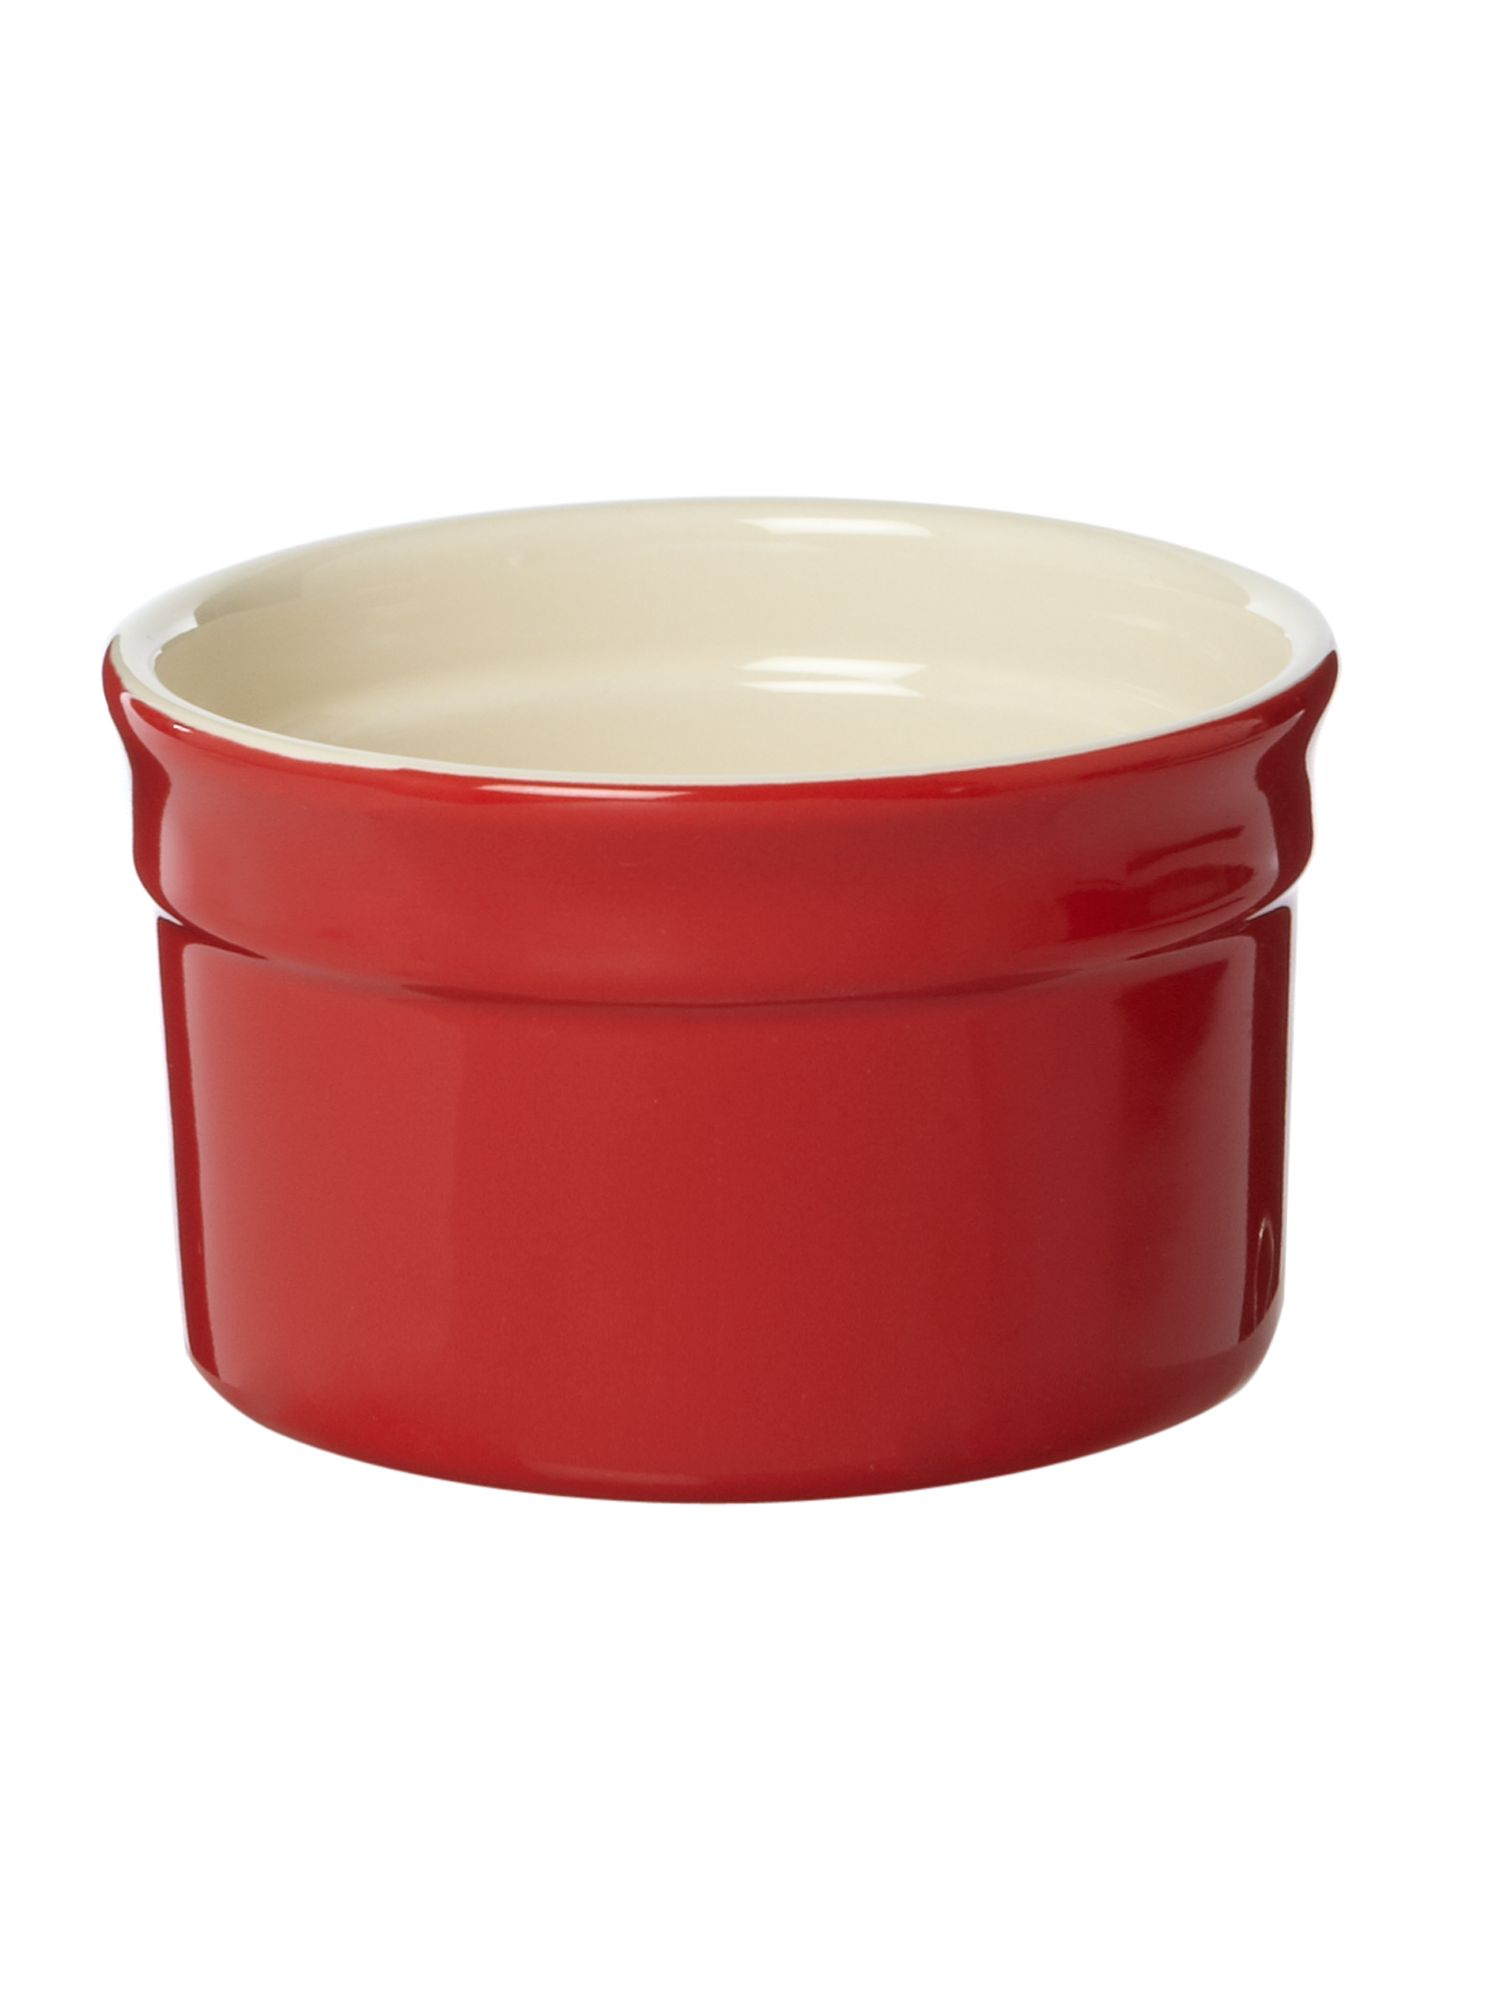 Maison ramekin, red